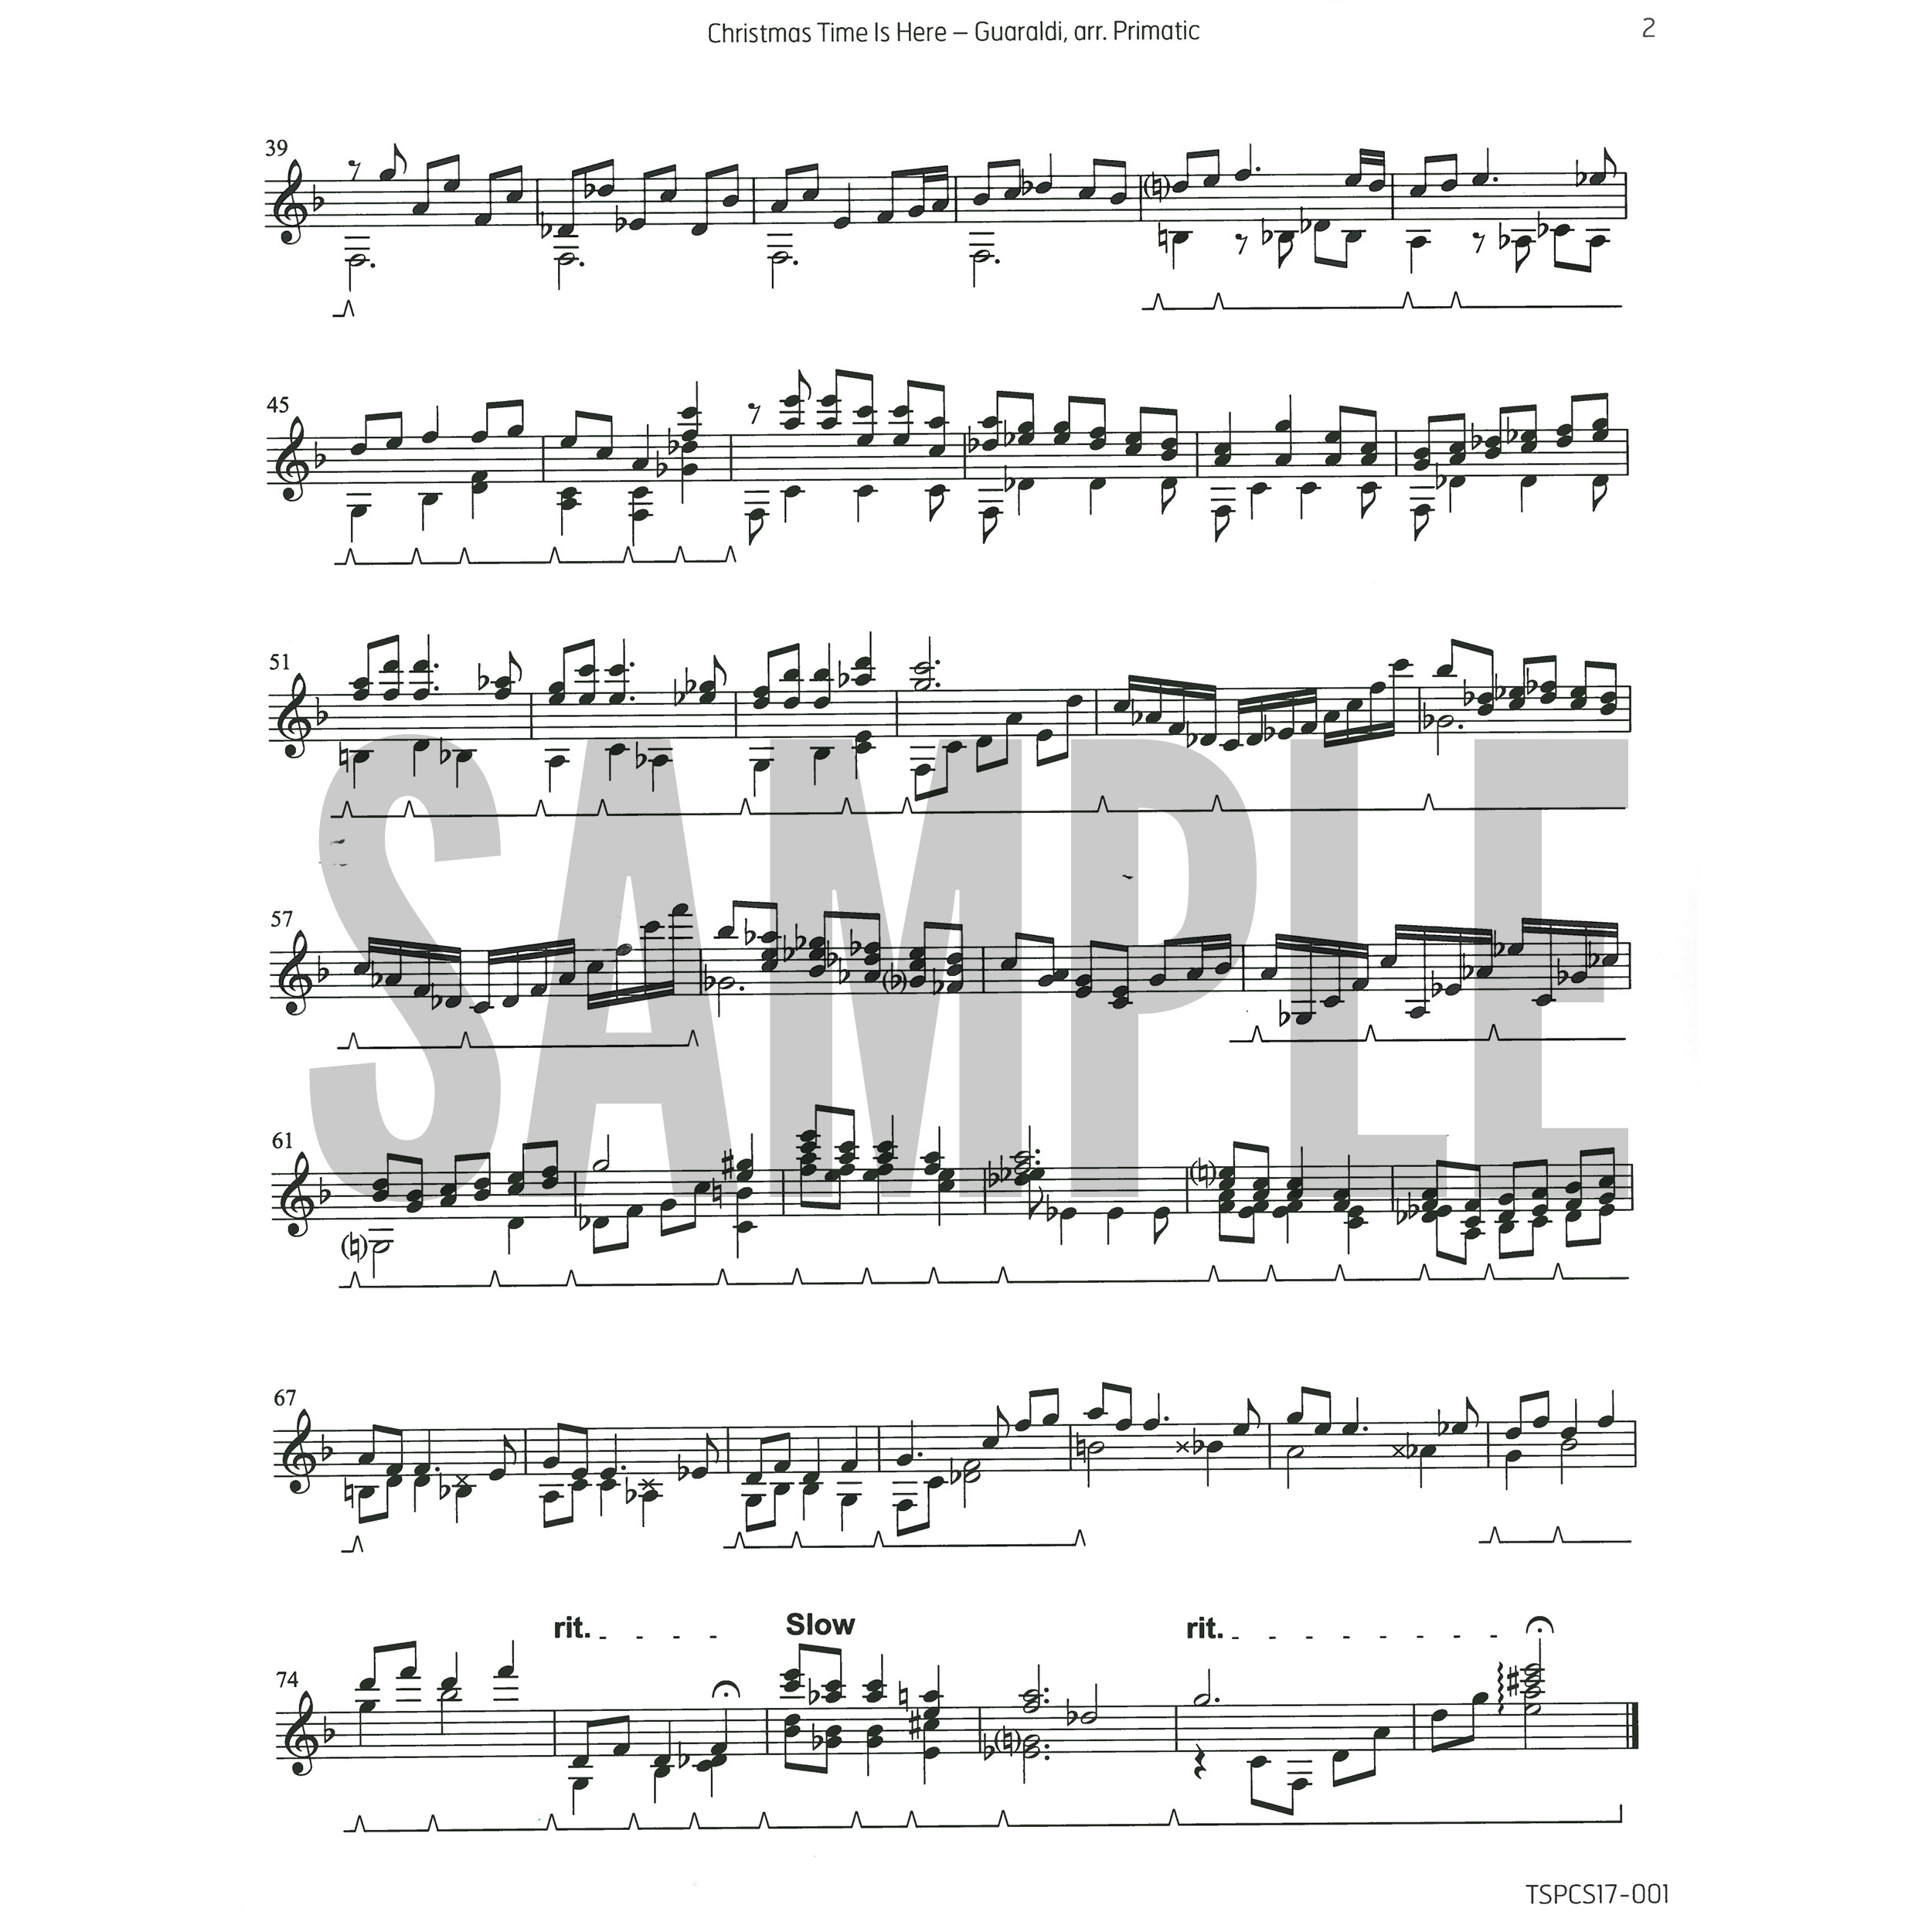 stephen primatic alternate image for christmas time is here by vince guaraldi arr - Christmas Time Is Here Sheet Music